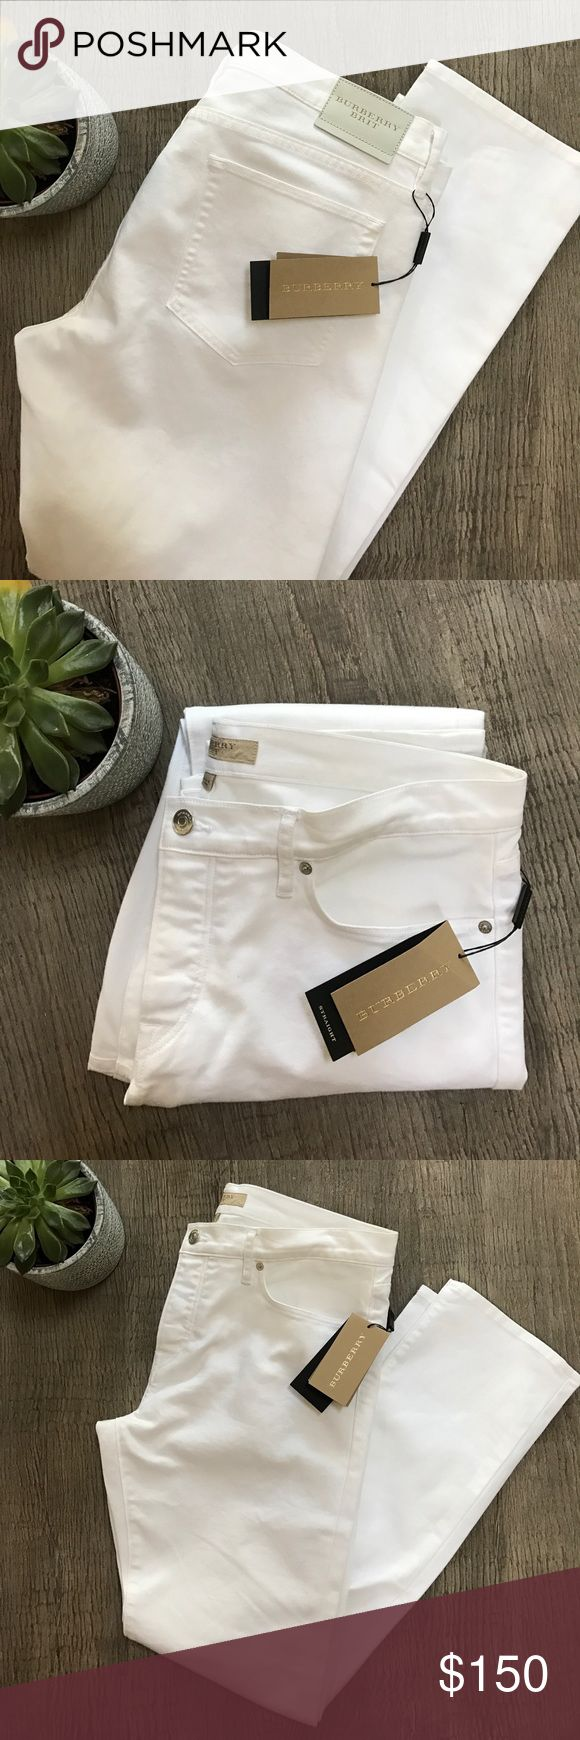 BURBERRY BRIT men's white jeans size W36 L32 NWT BURBERRY BRIT men's white jeans size W36 L32 NWT Burberry Jeans Straight